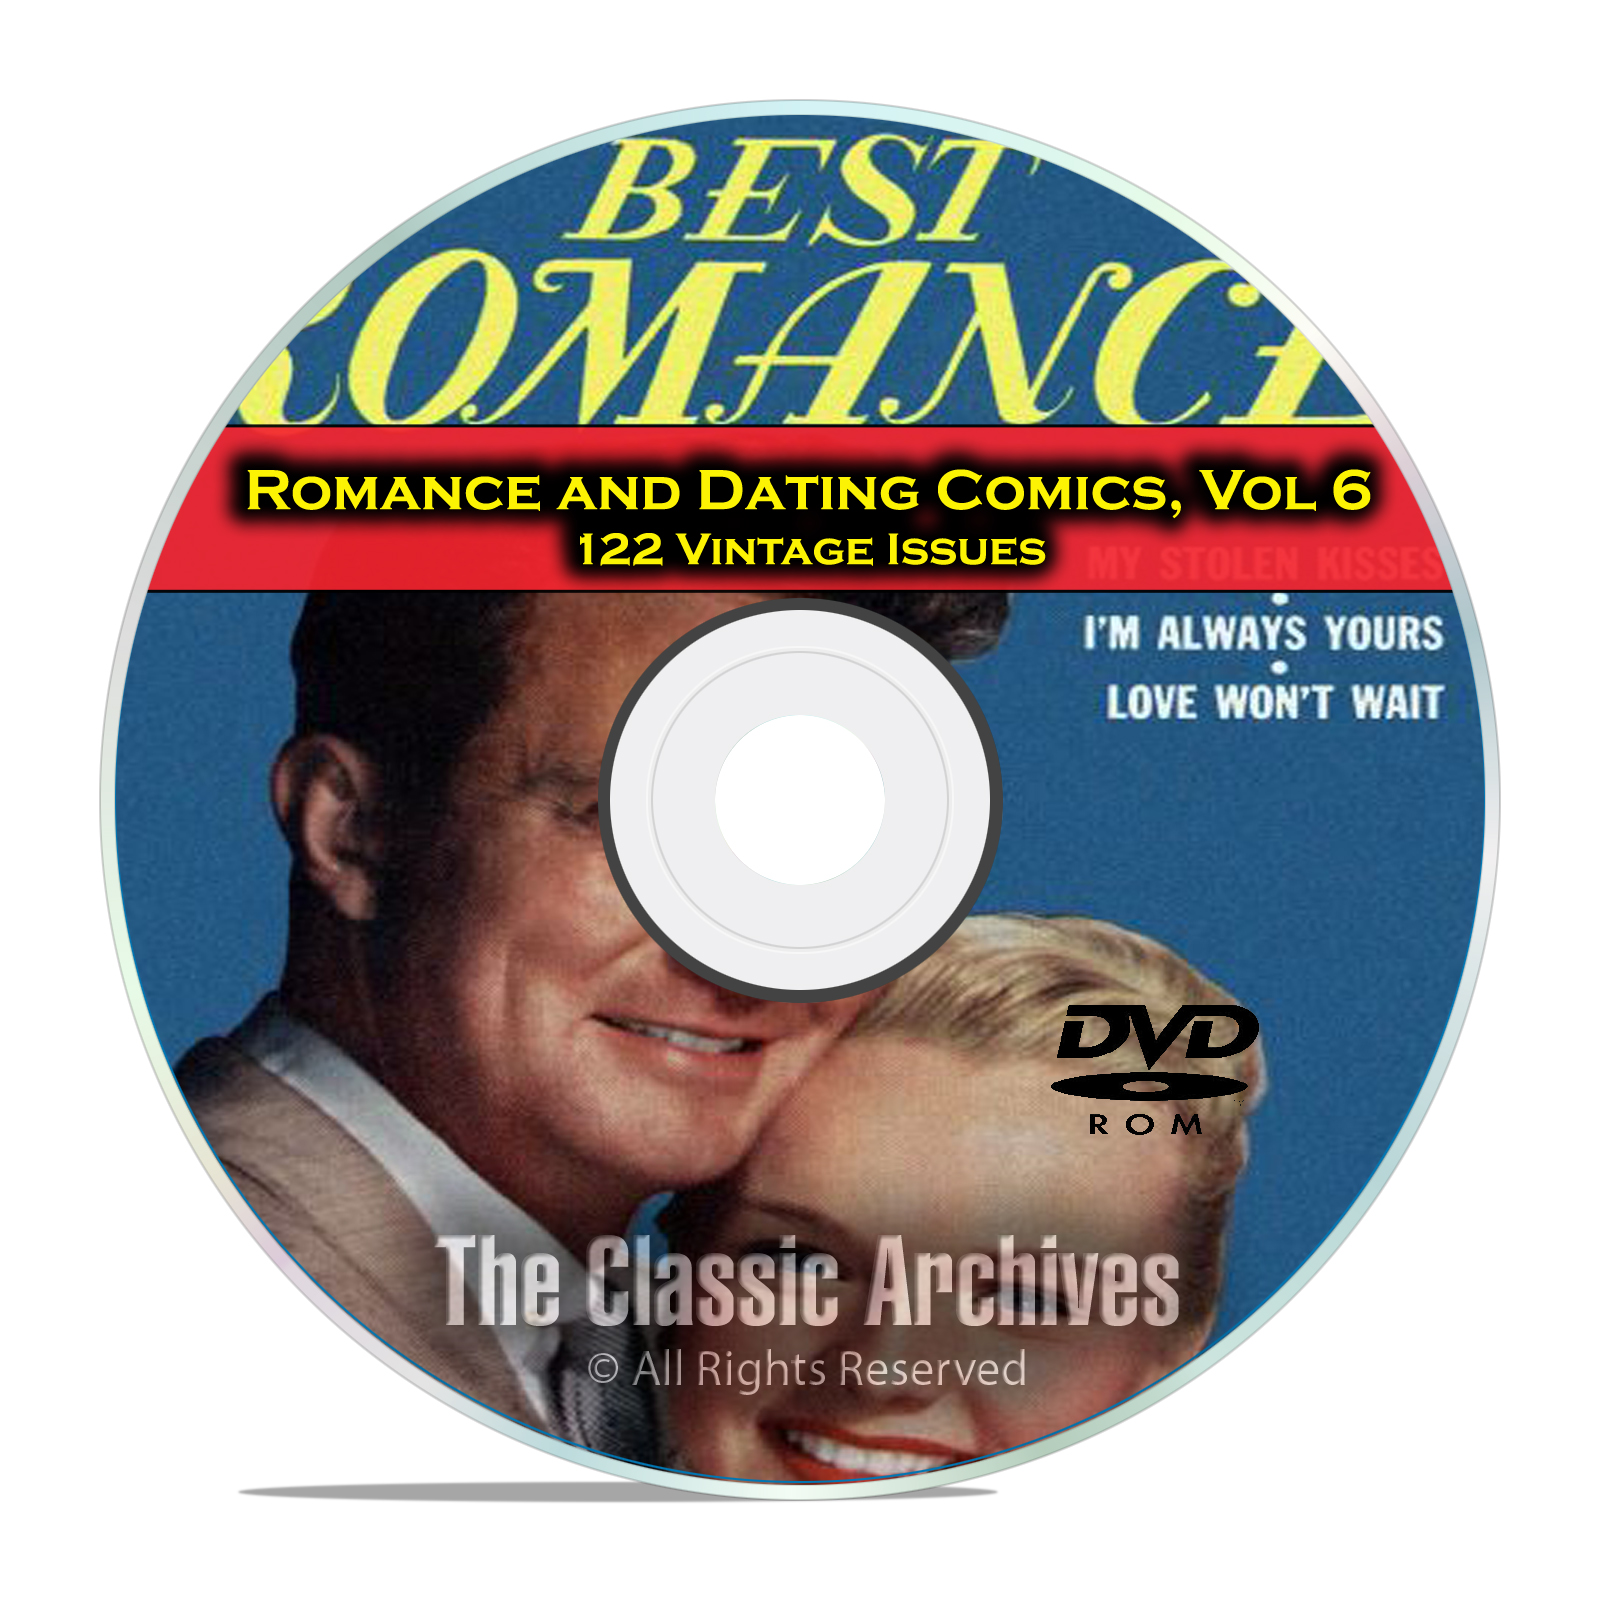 Romance, Love, Dating Comics, Vol 6, Confessions of Lovelorn Golden Age DVD